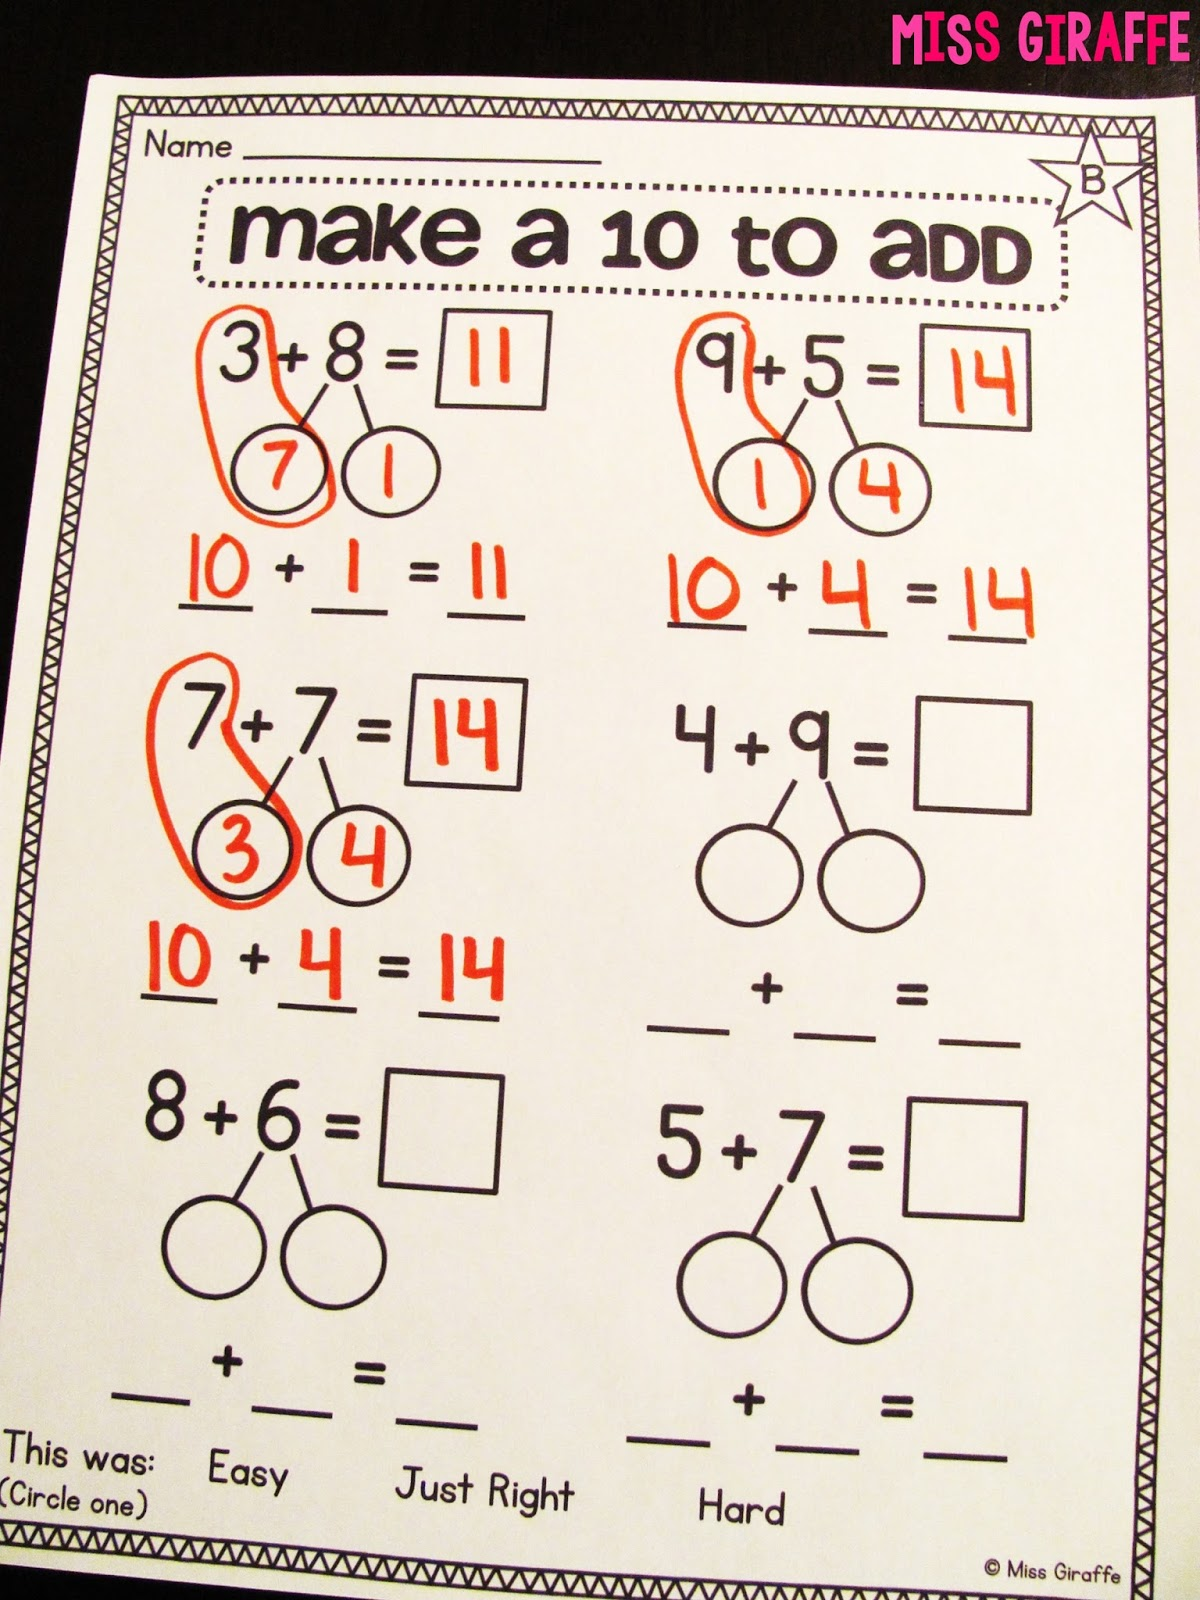 Miss Giraffes Class Making a 10 to Add – Making Ten Worksheets